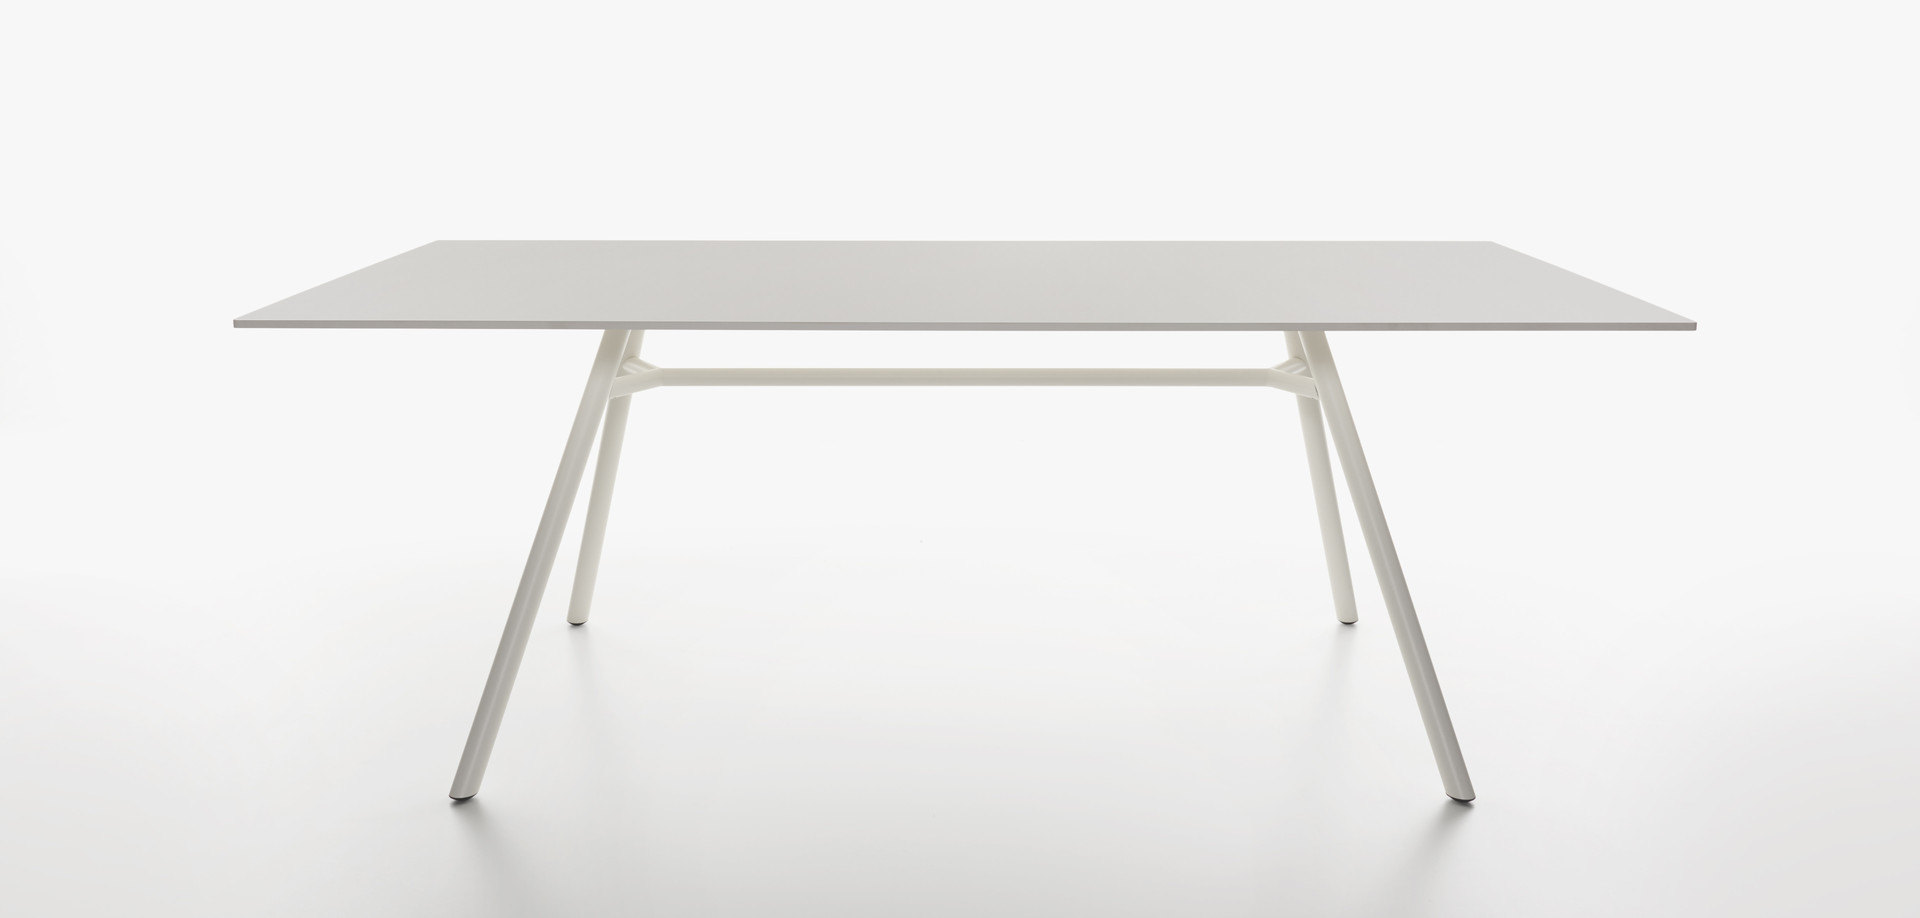 Plank - MART table, rectangular table top, white aluminum legs, white HPL top